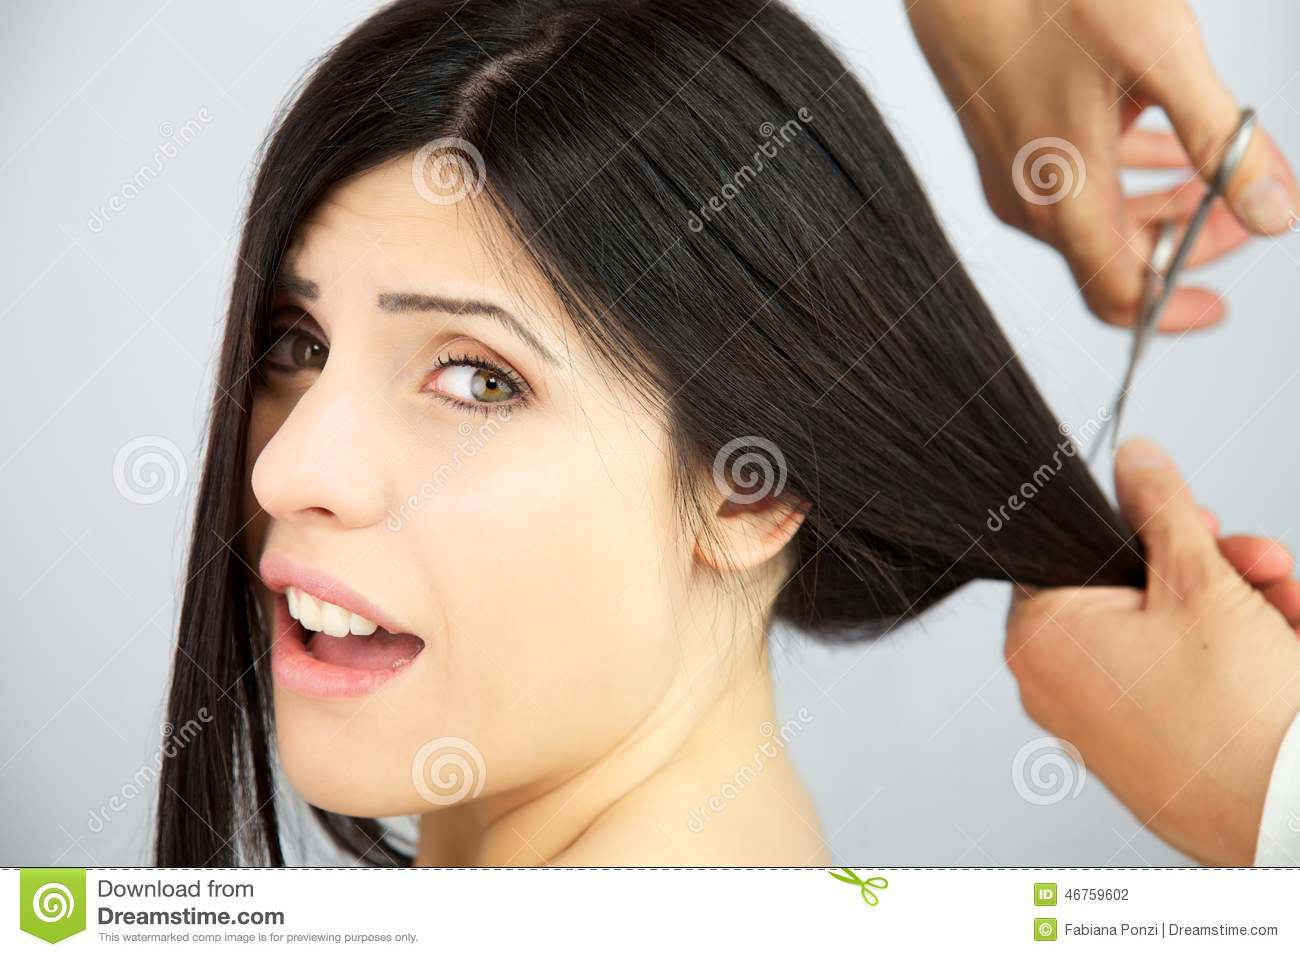 how to get long hair not